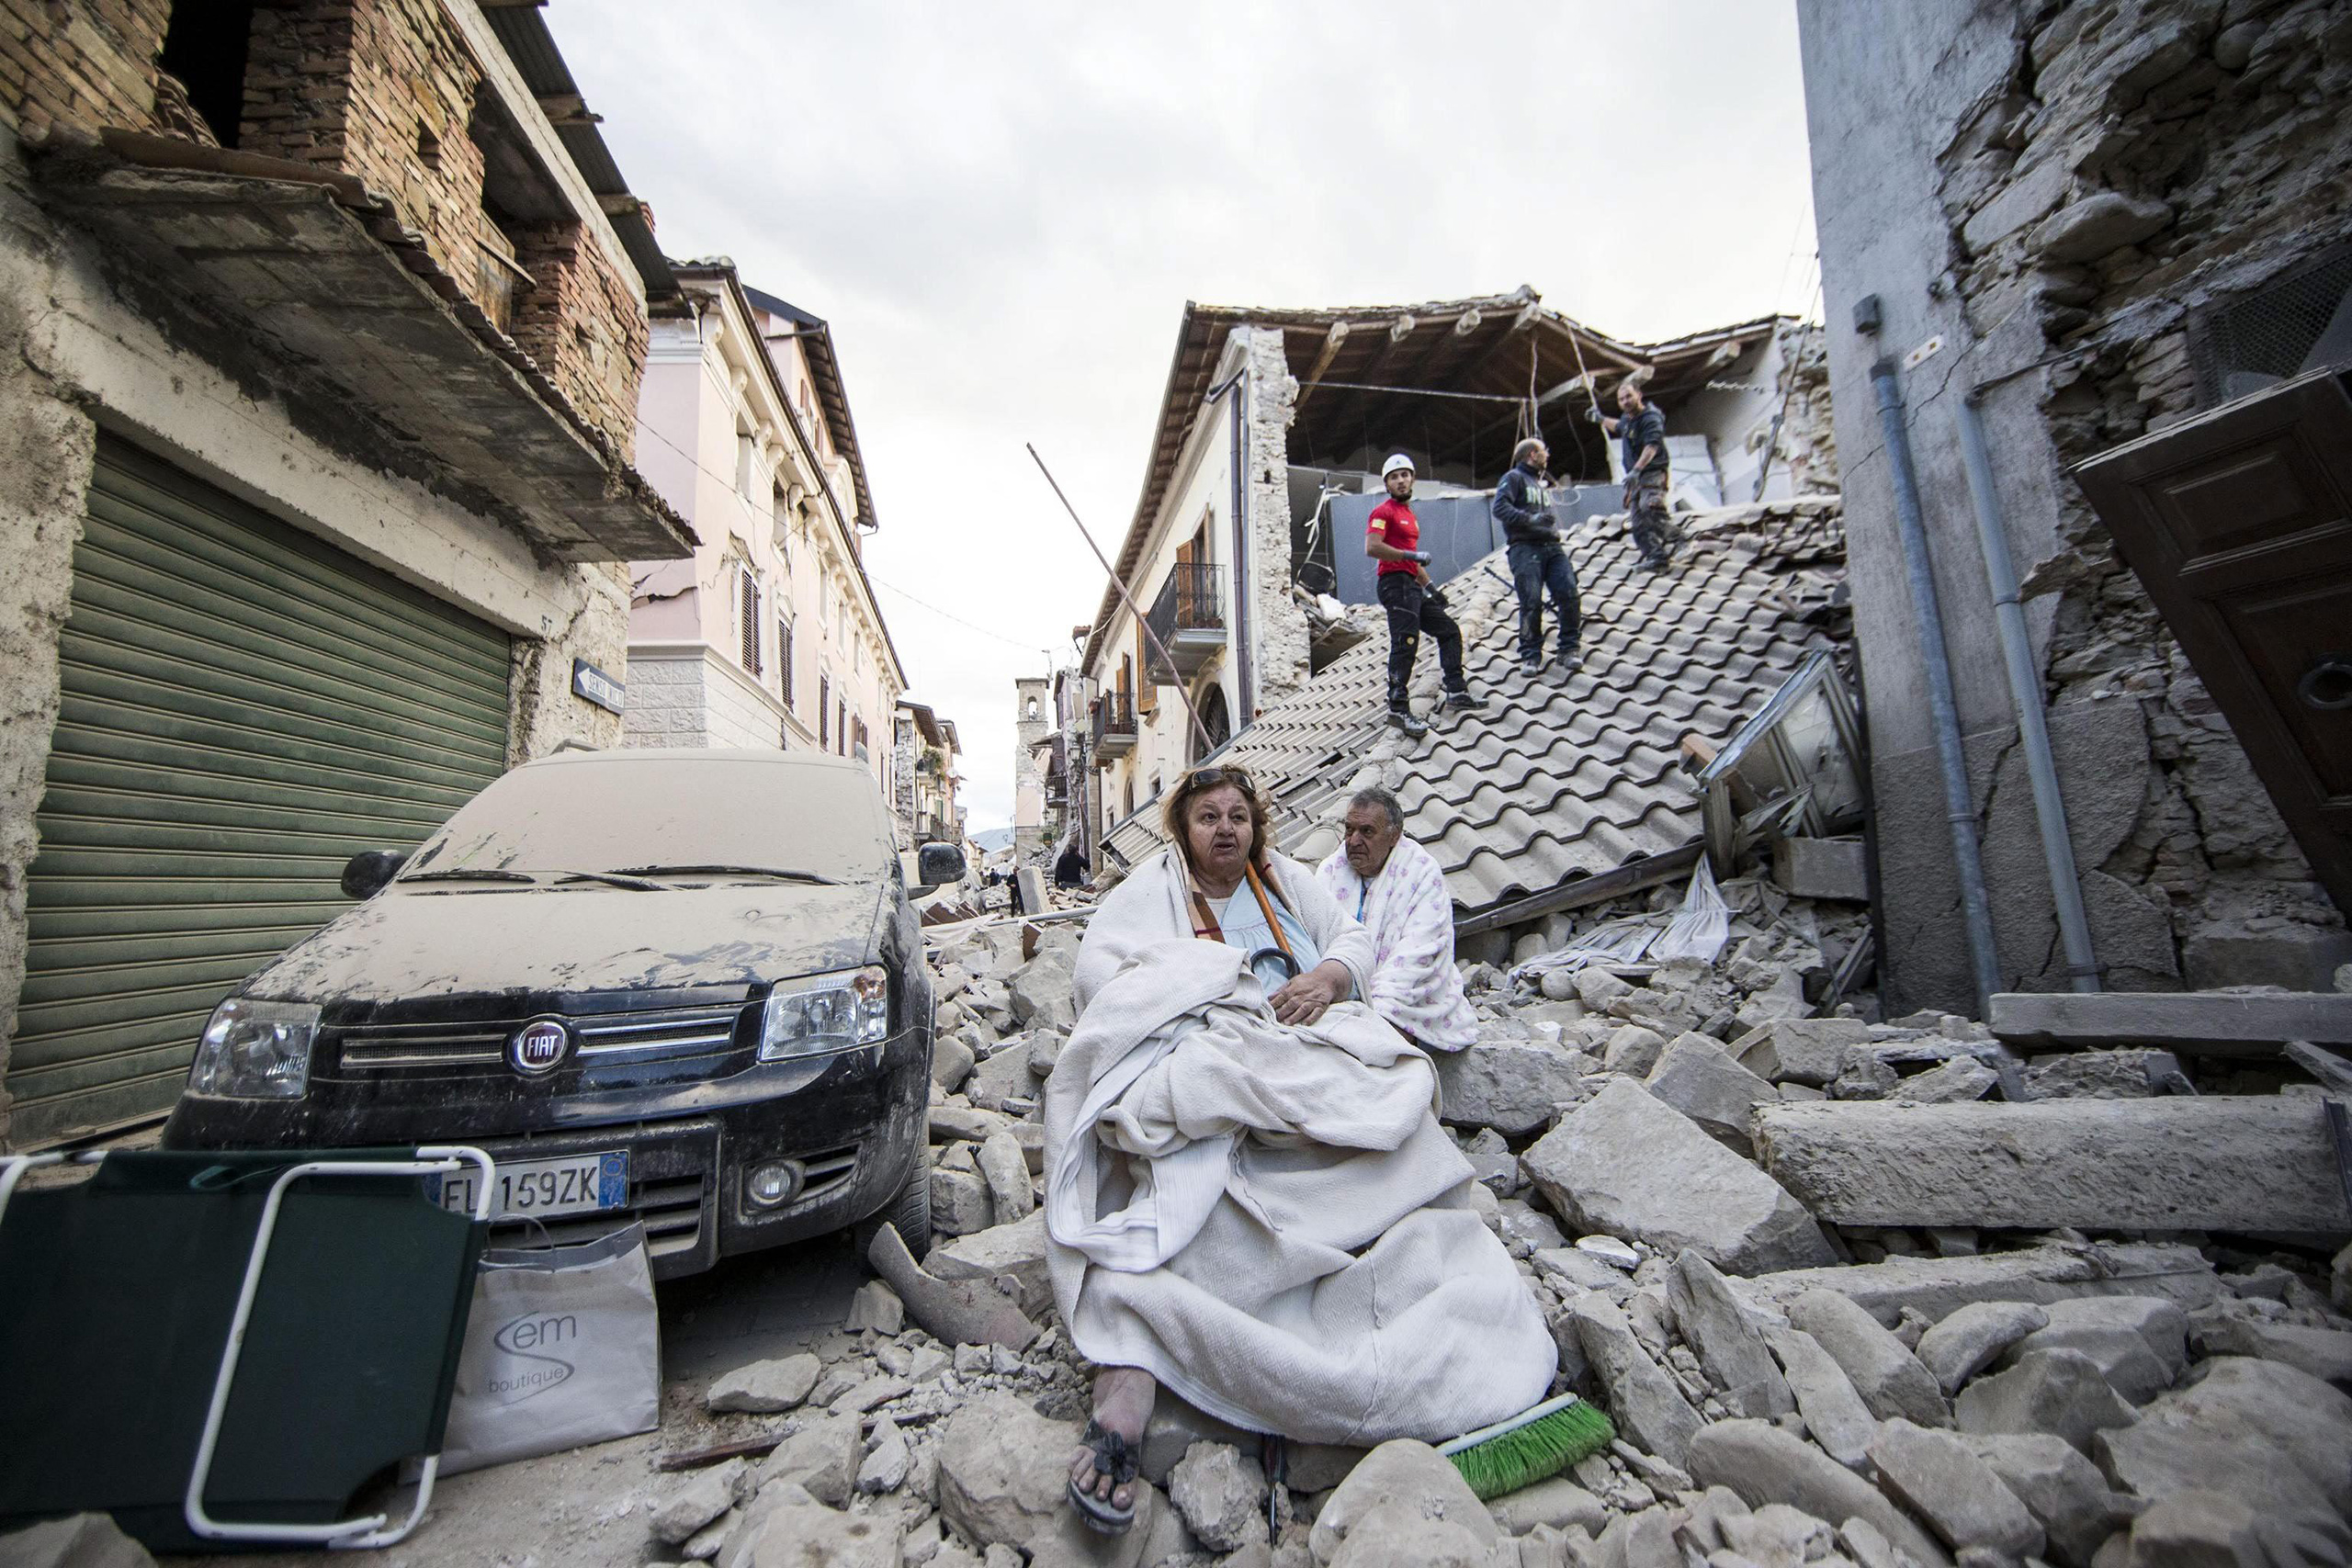 Residents look on as they stand on the rubble of collapsed buildings in Amatrice, central Italy, Aug. 24, 2016